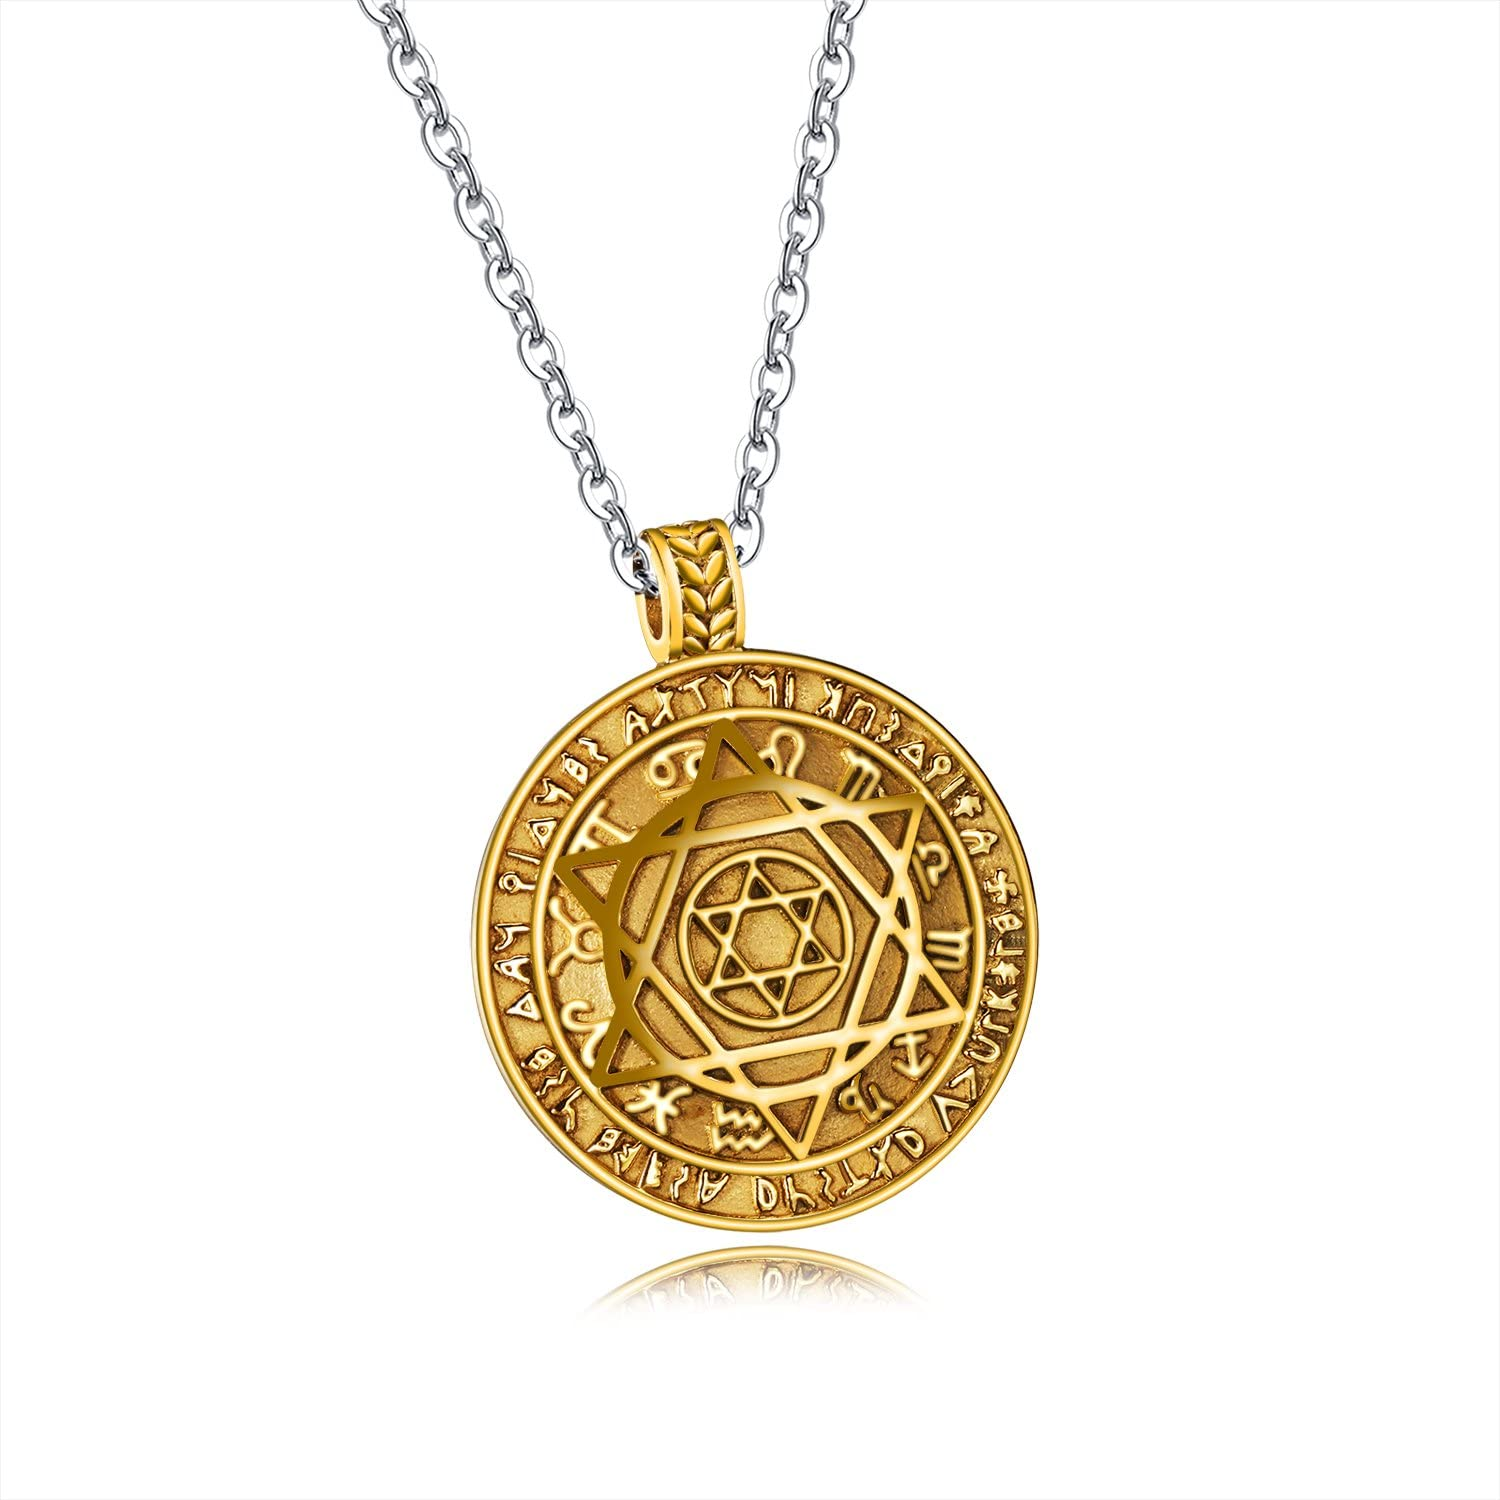 JAJAFOOK Mens Stainless Steel Talisman Seal Solomon Jewish Star of David 12 Constellation Round Tag Pendant Necklace with Chain